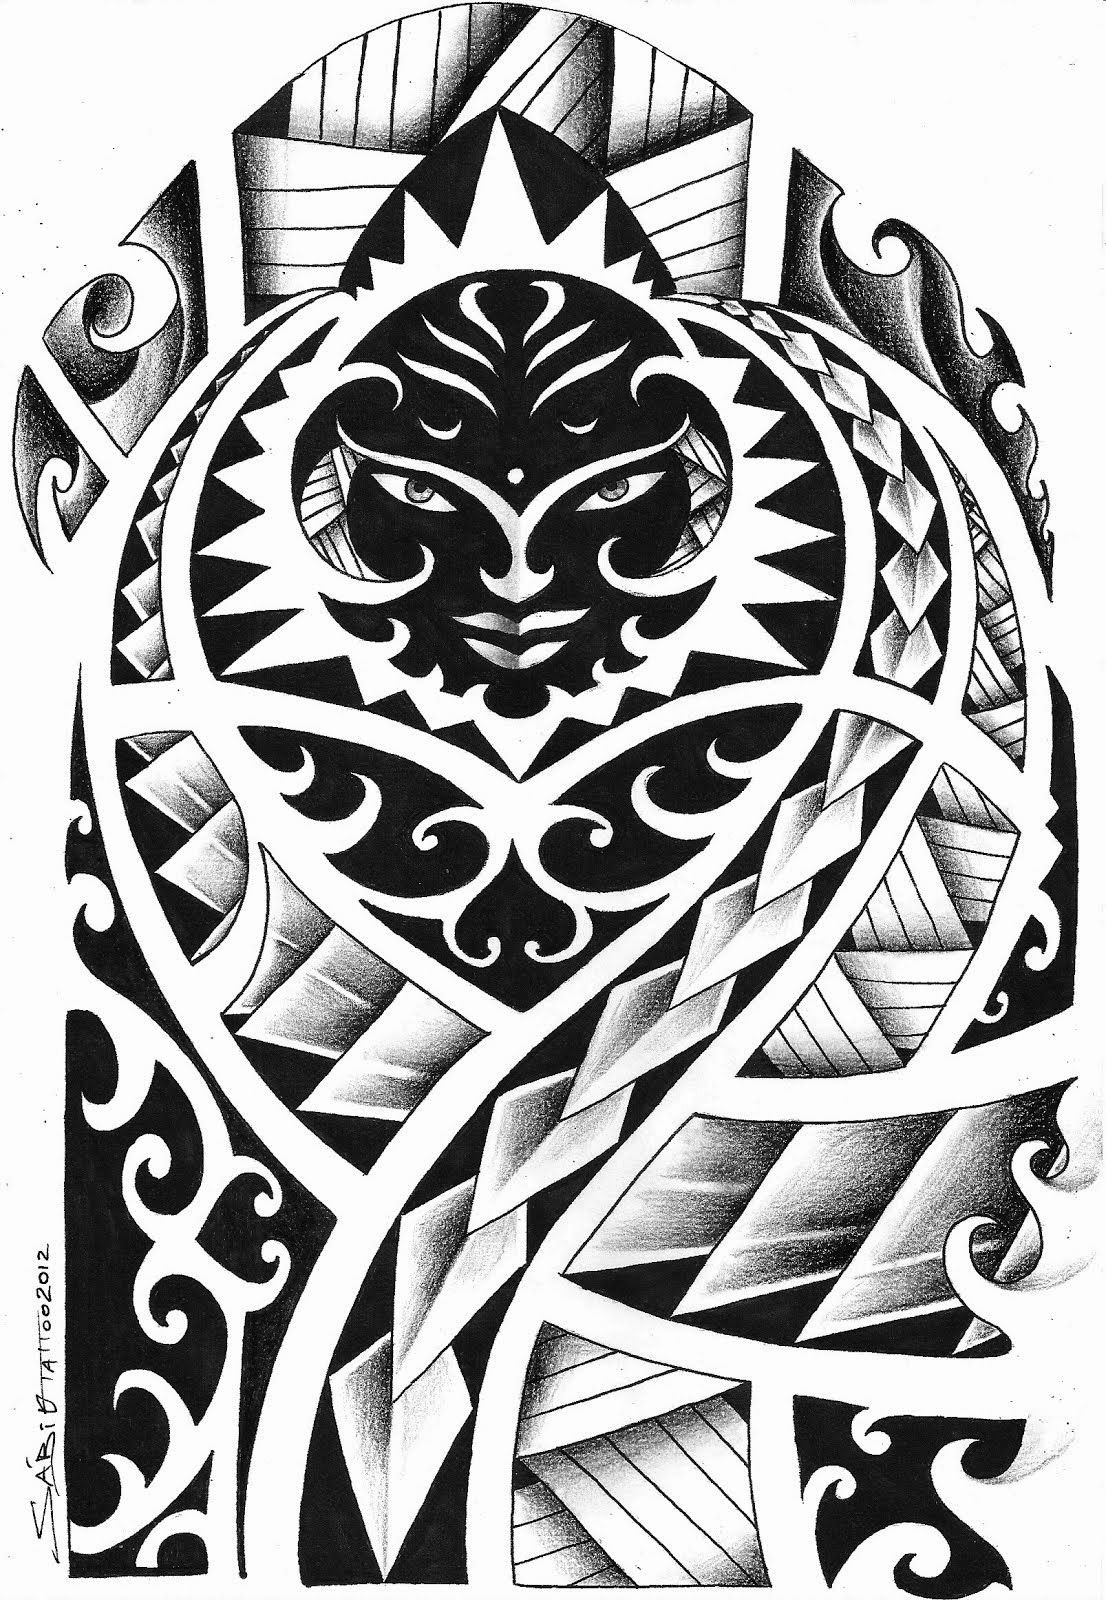 Maorigriffetattoo Tattoo Tribaltattoo Maoritattoo Tribal